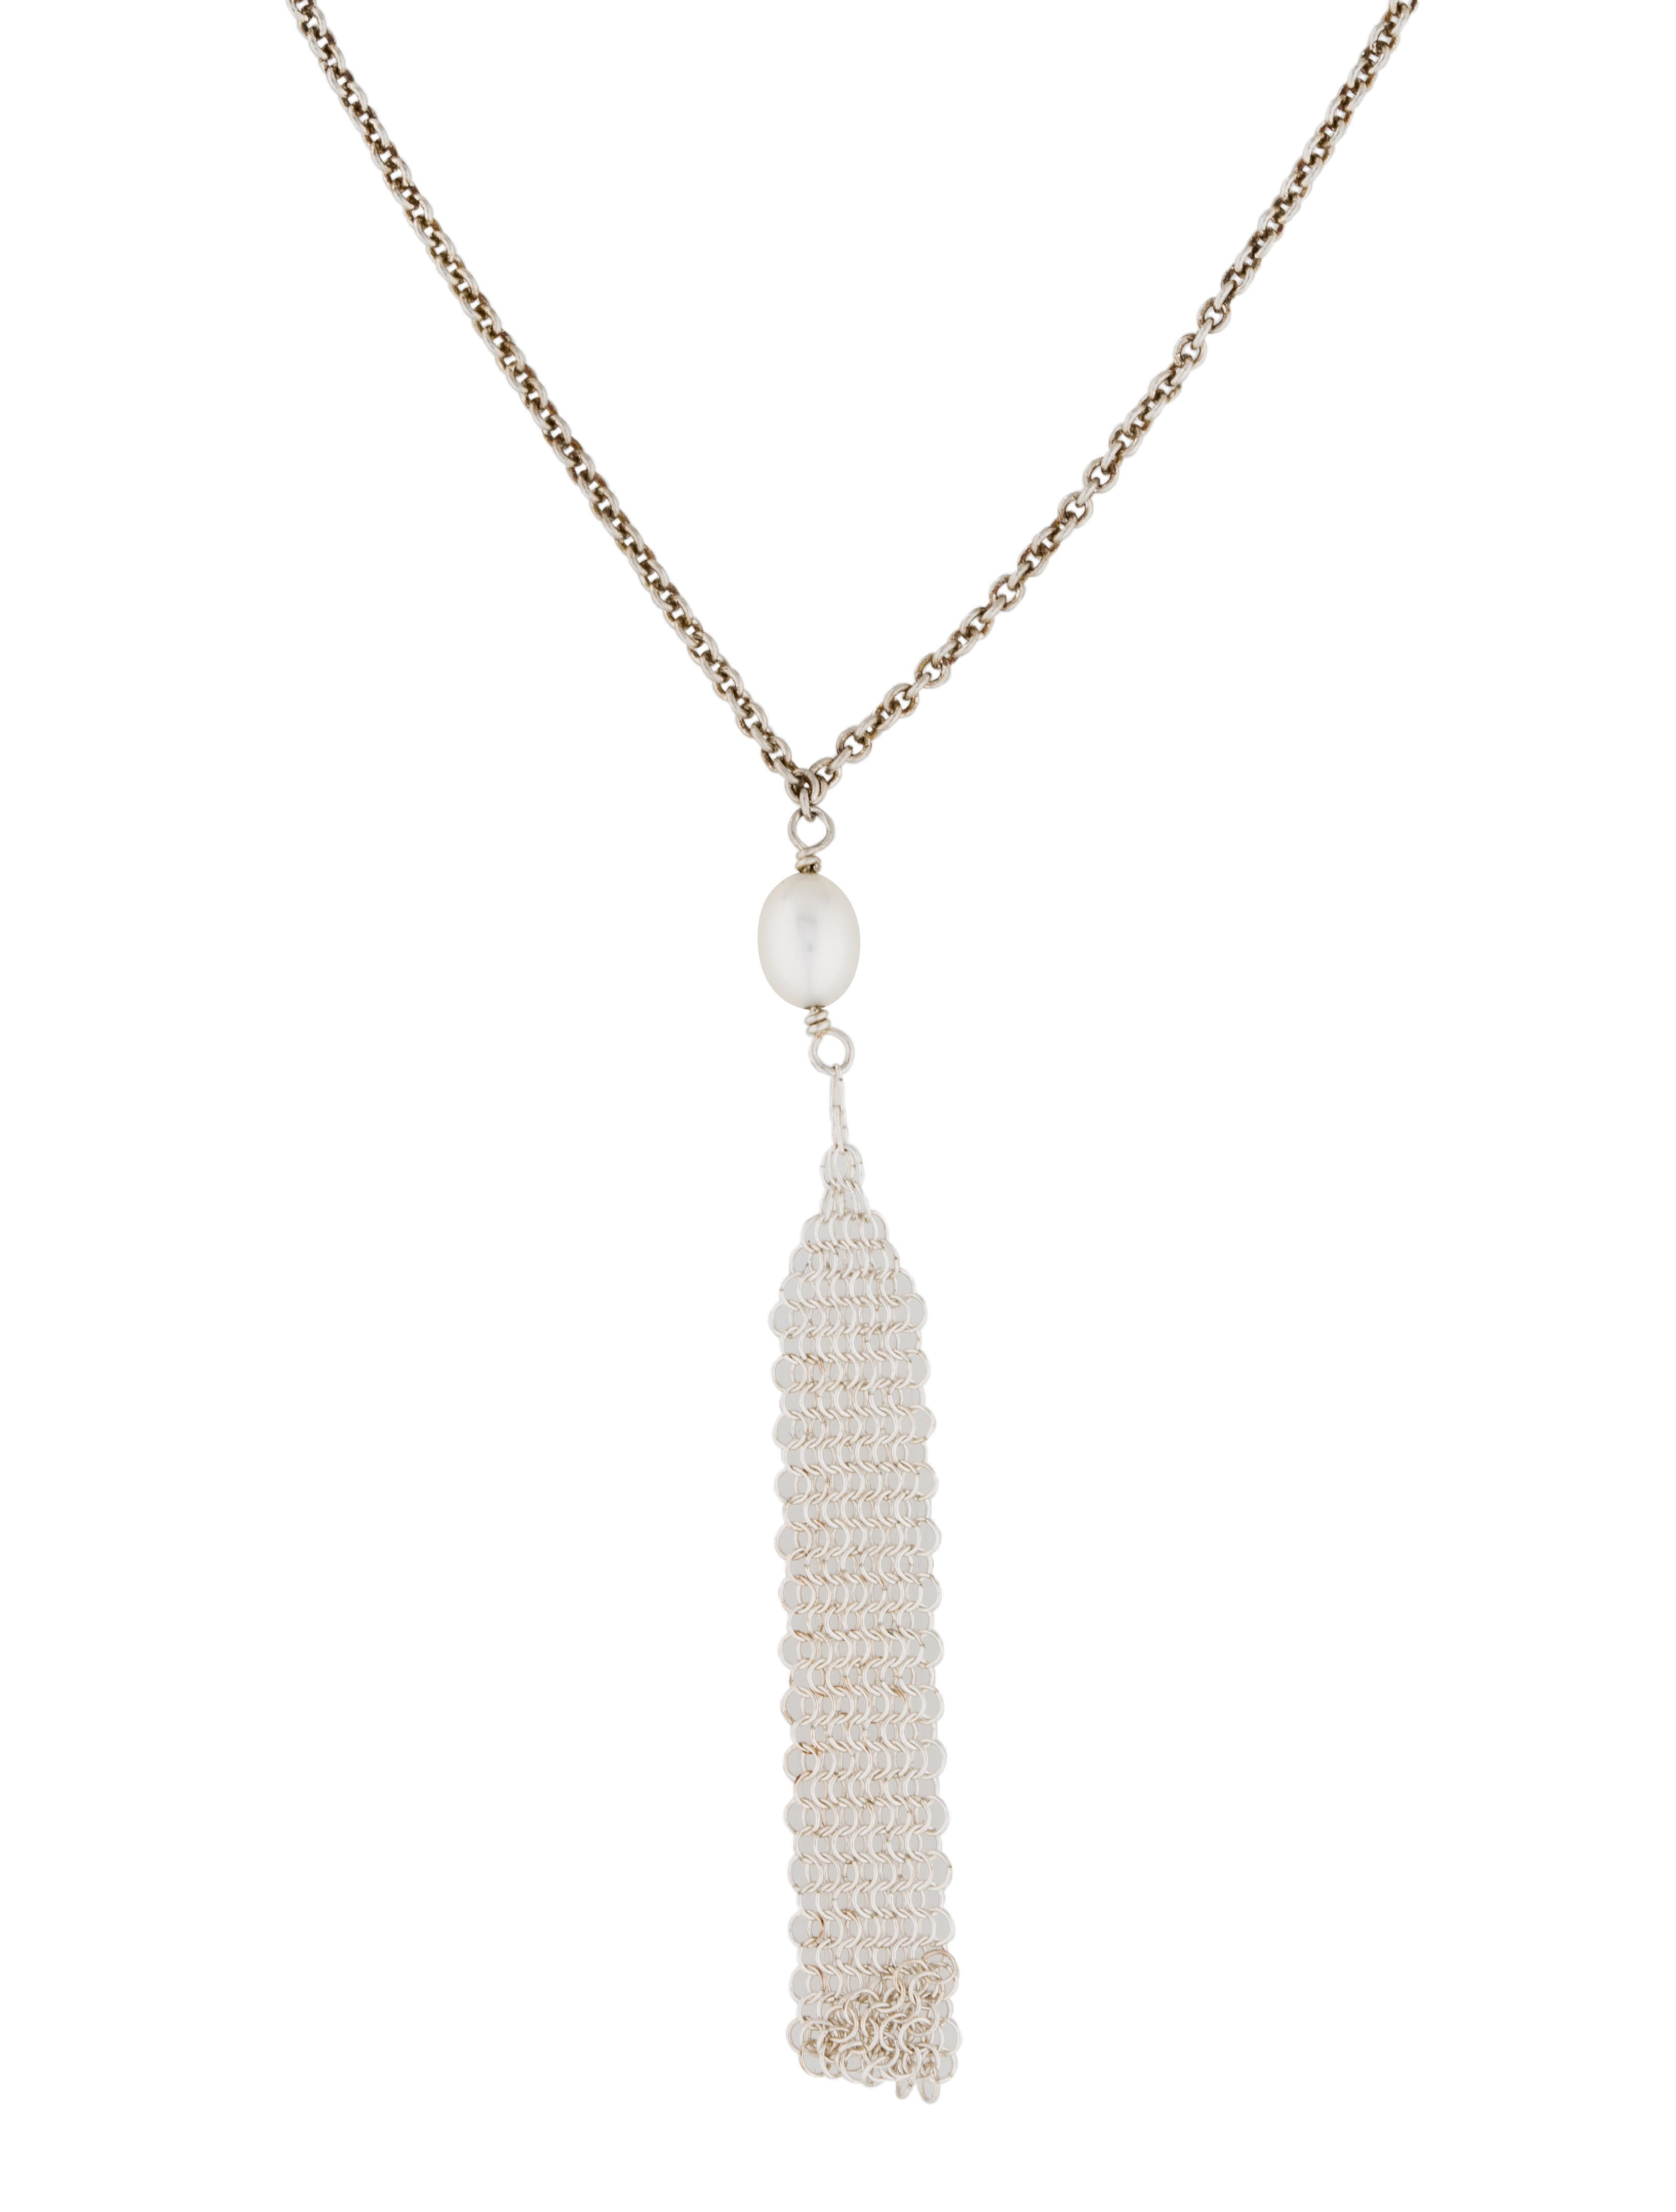 29248587b Tiffany & Co. Mesh Tassel Pendant - Necklaces - TIF37878 | The RealReal